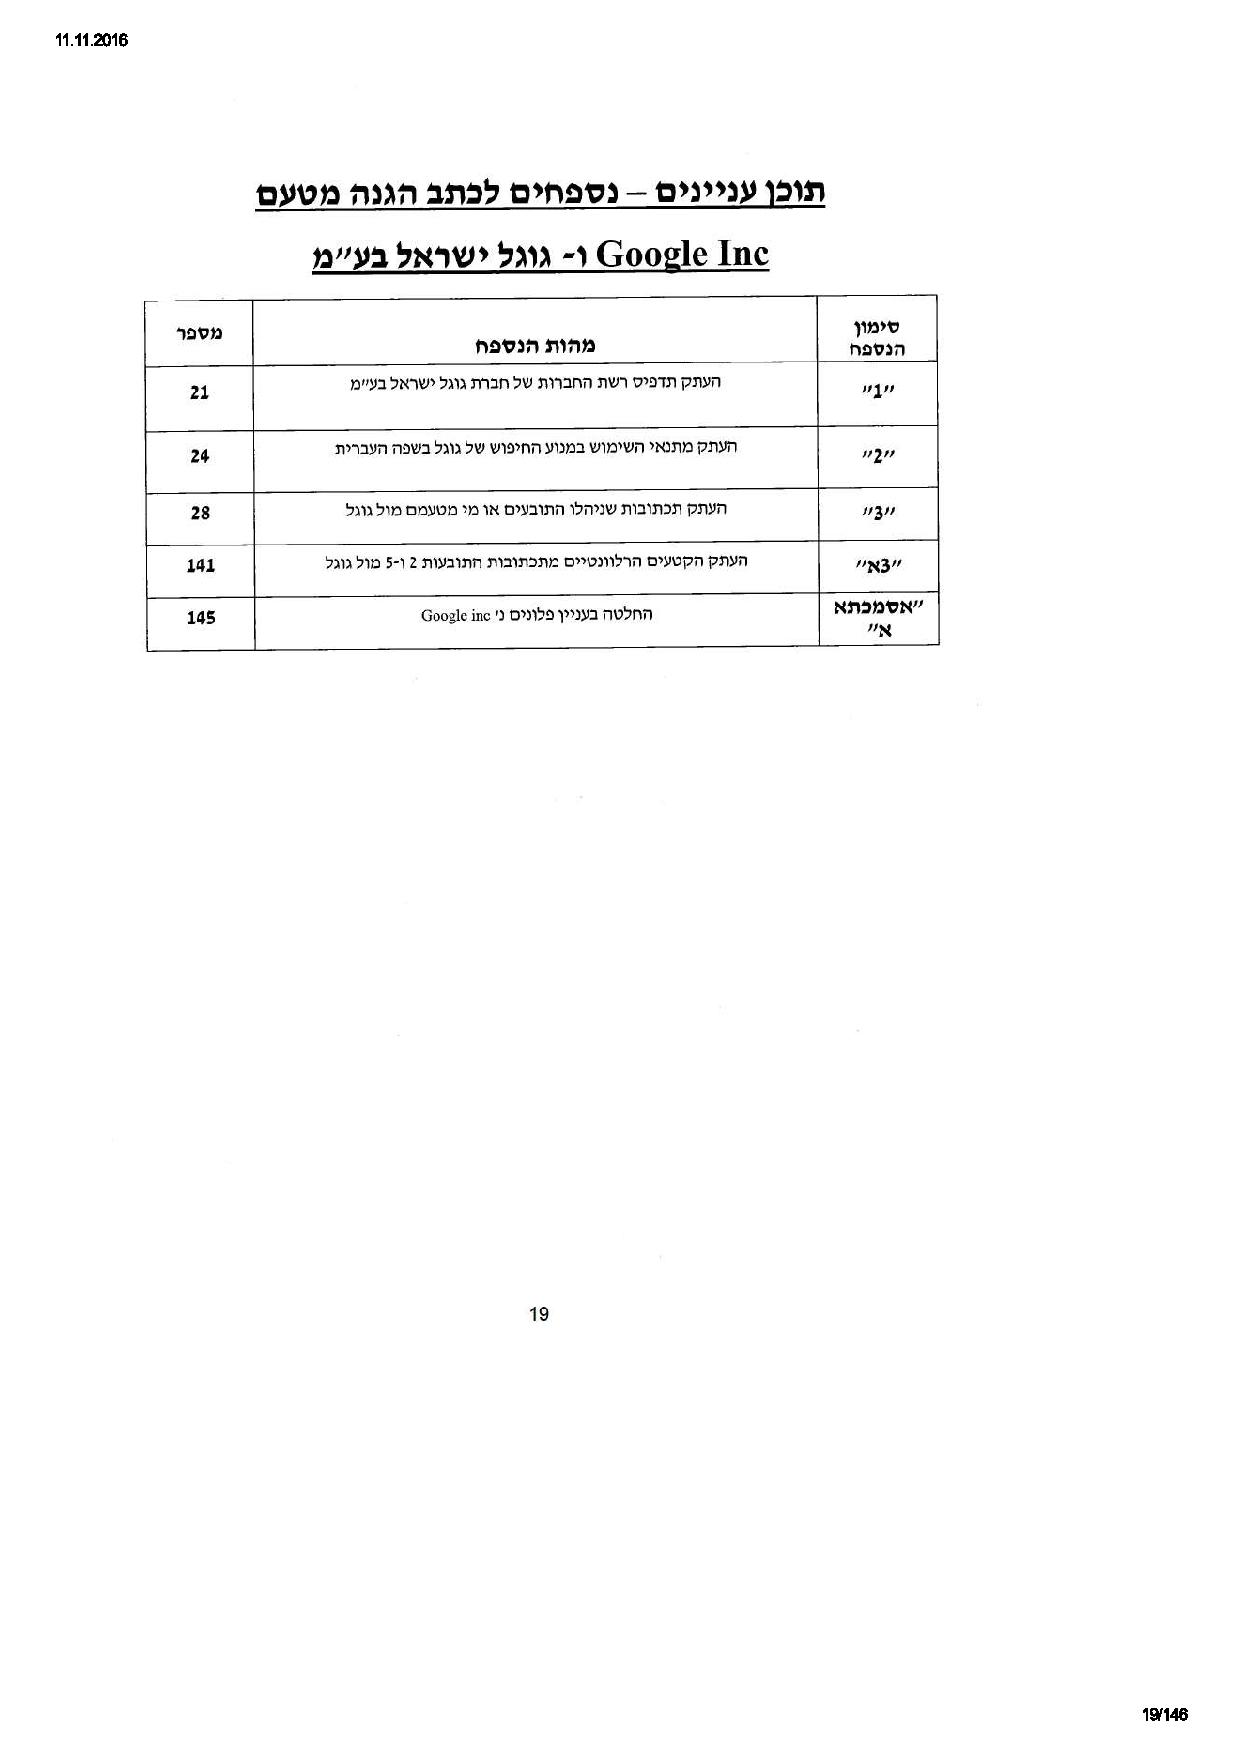 document-page-019